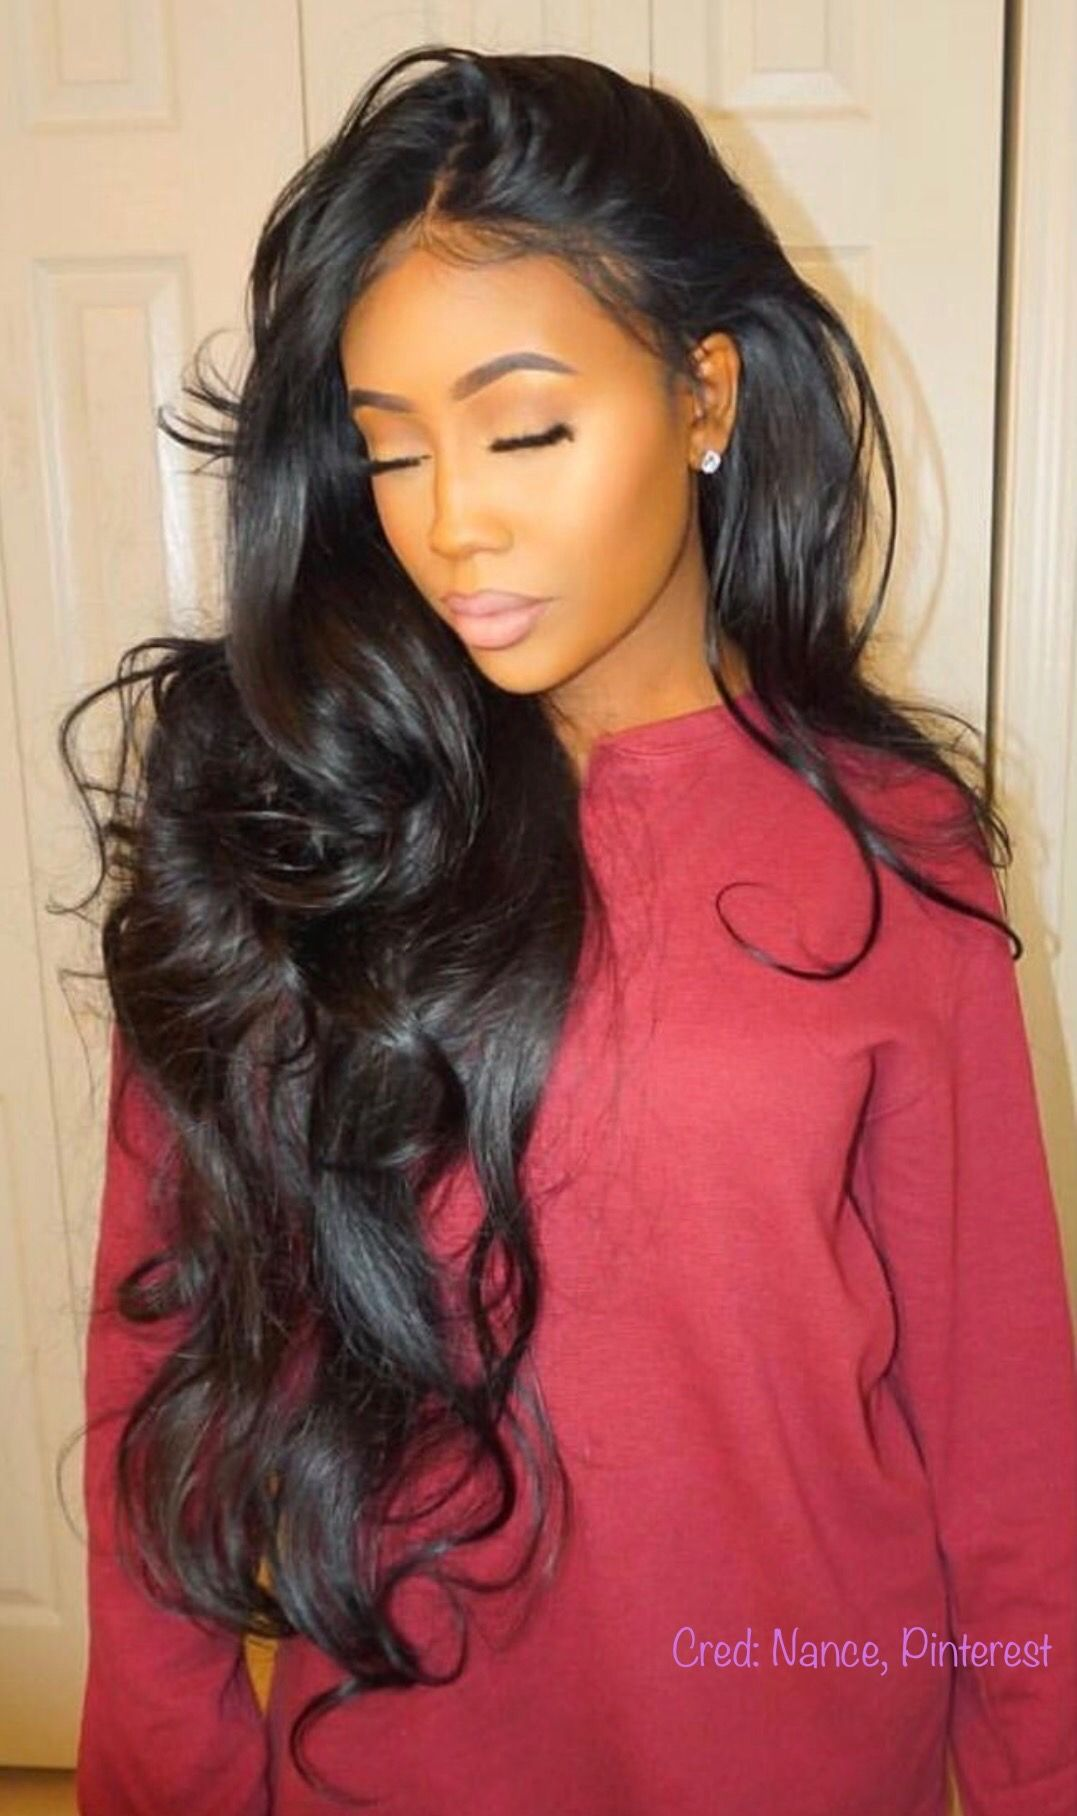 Pin by aaliyah on formal pinterest hair goals hair style